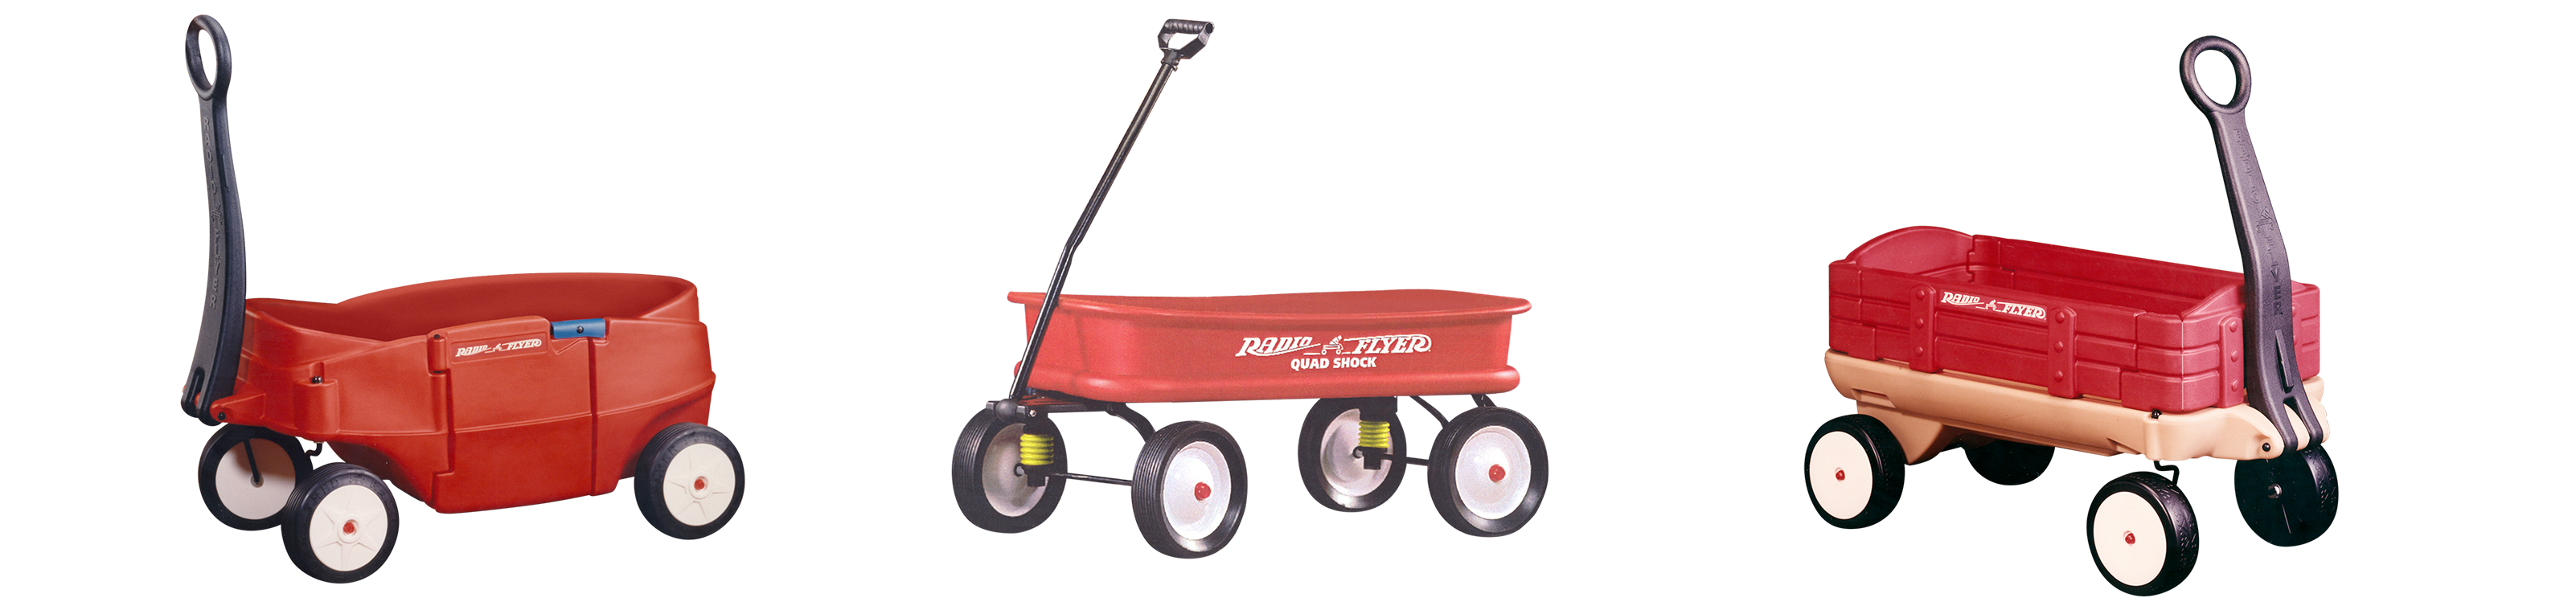 Radio flyer png. Heritage history with characteristic